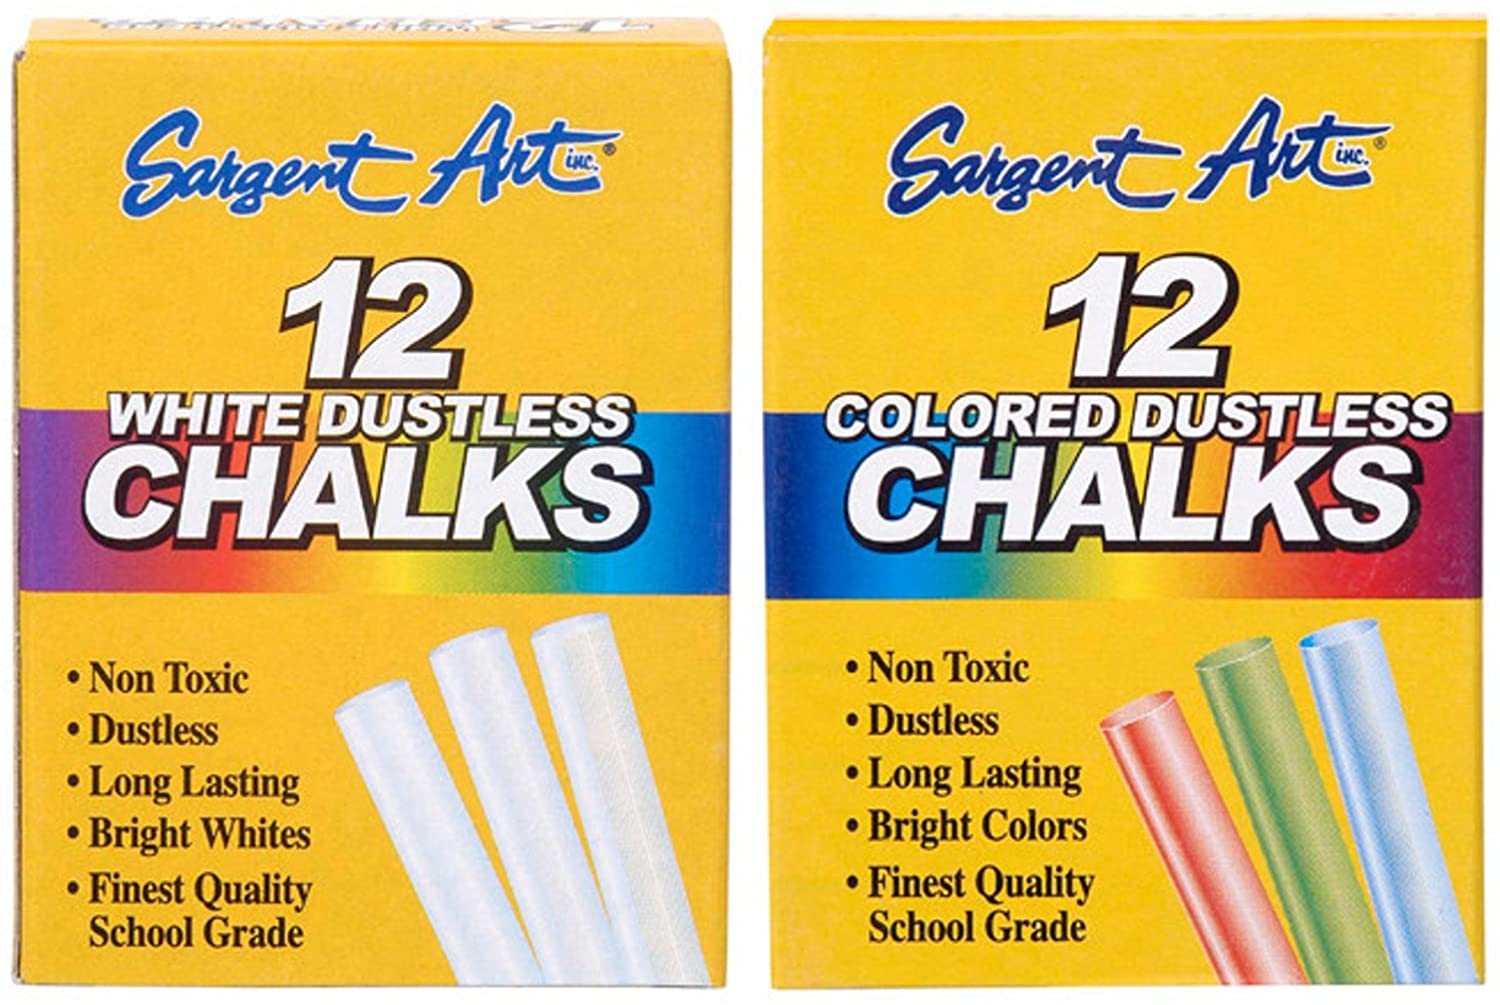 Sargent Art Dustless Chalk Bundle - 1 White 12-Pack + 1 Colored 12-Pack